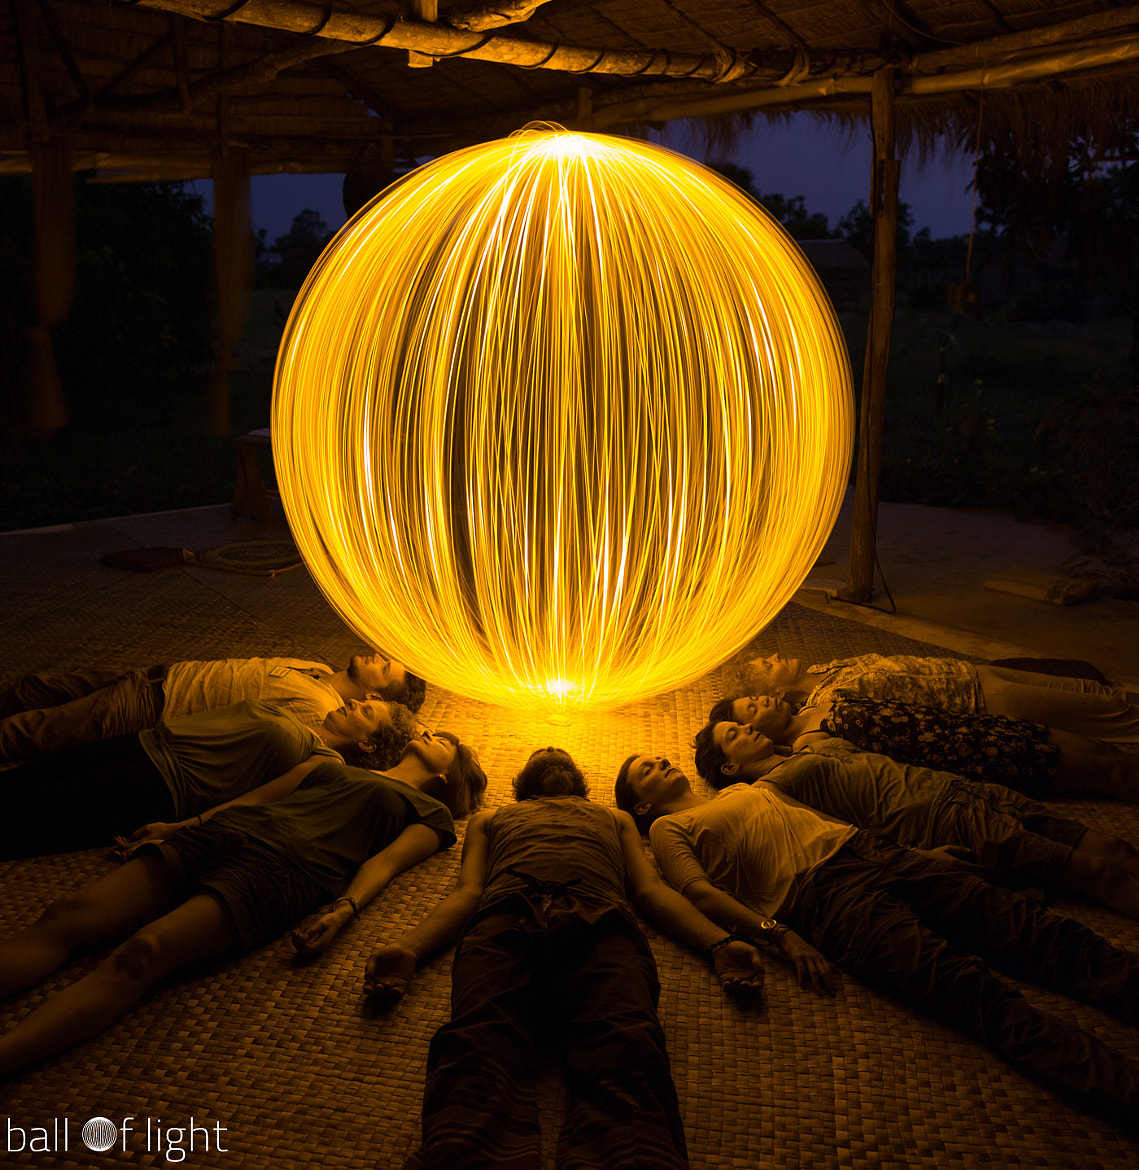 Photograph Ball of Light - The Retreat by Denis Smith on 500px